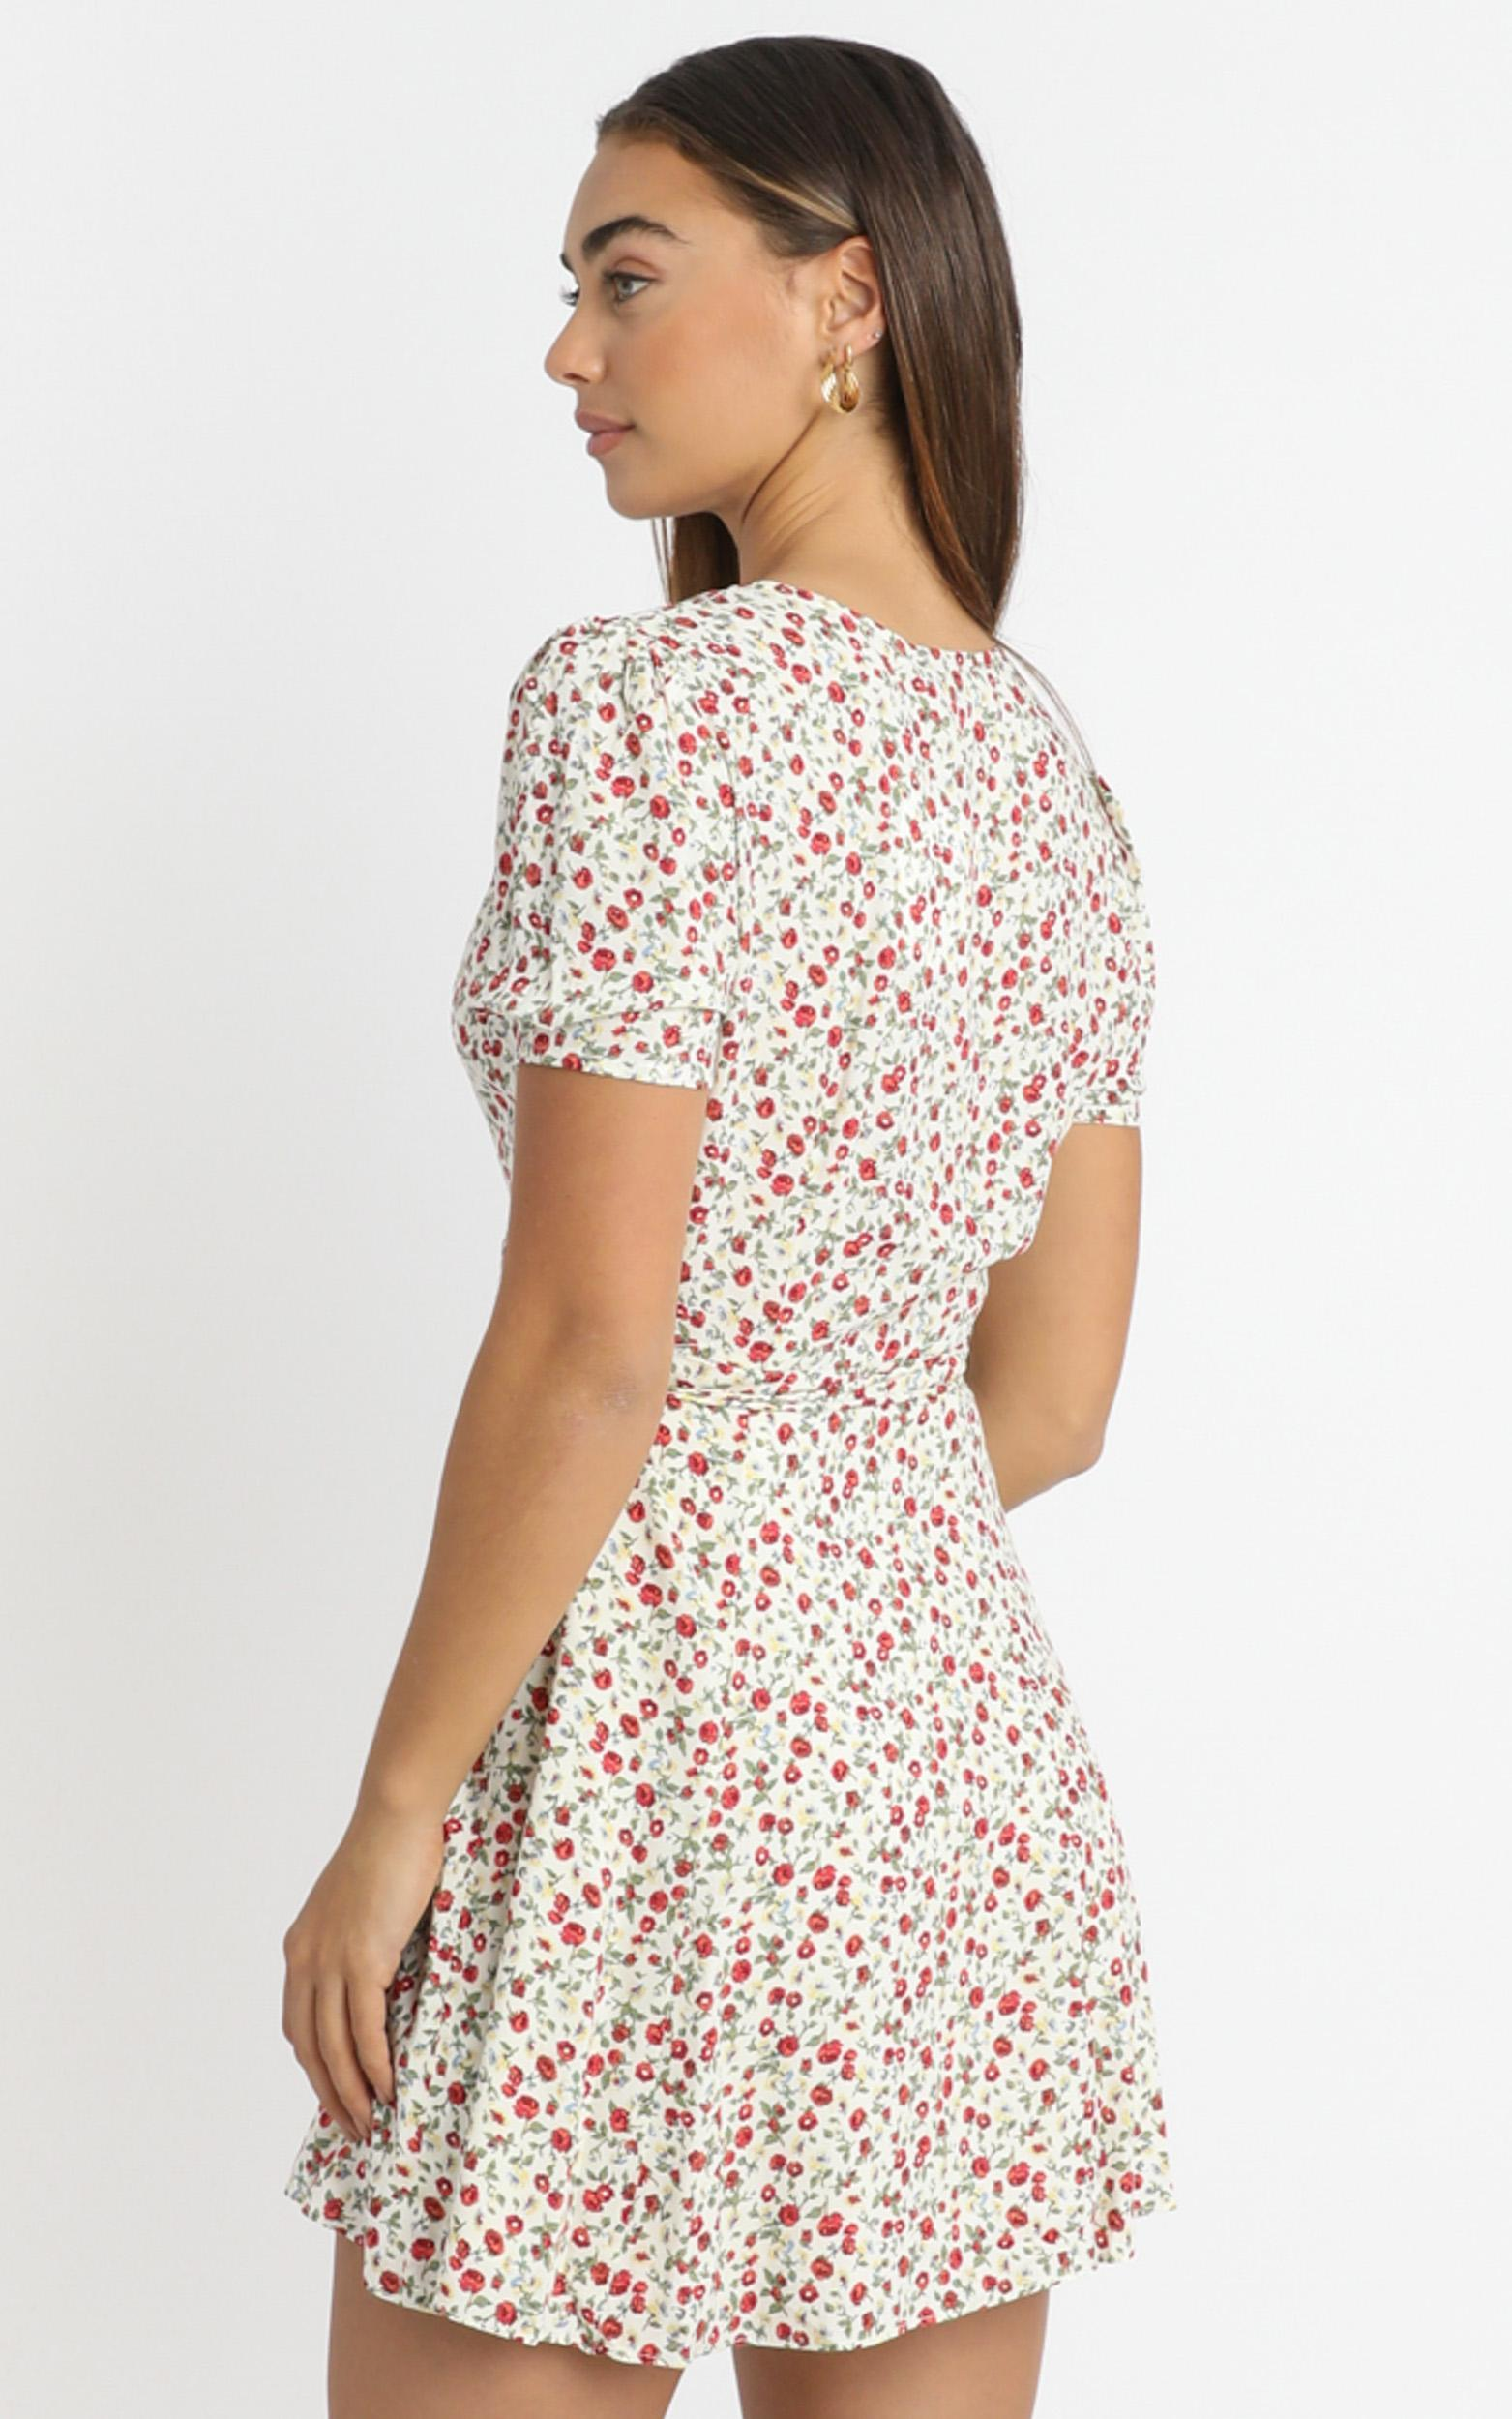 Aida Dress in White Floral - 6 (XS), White, hi-res image number null